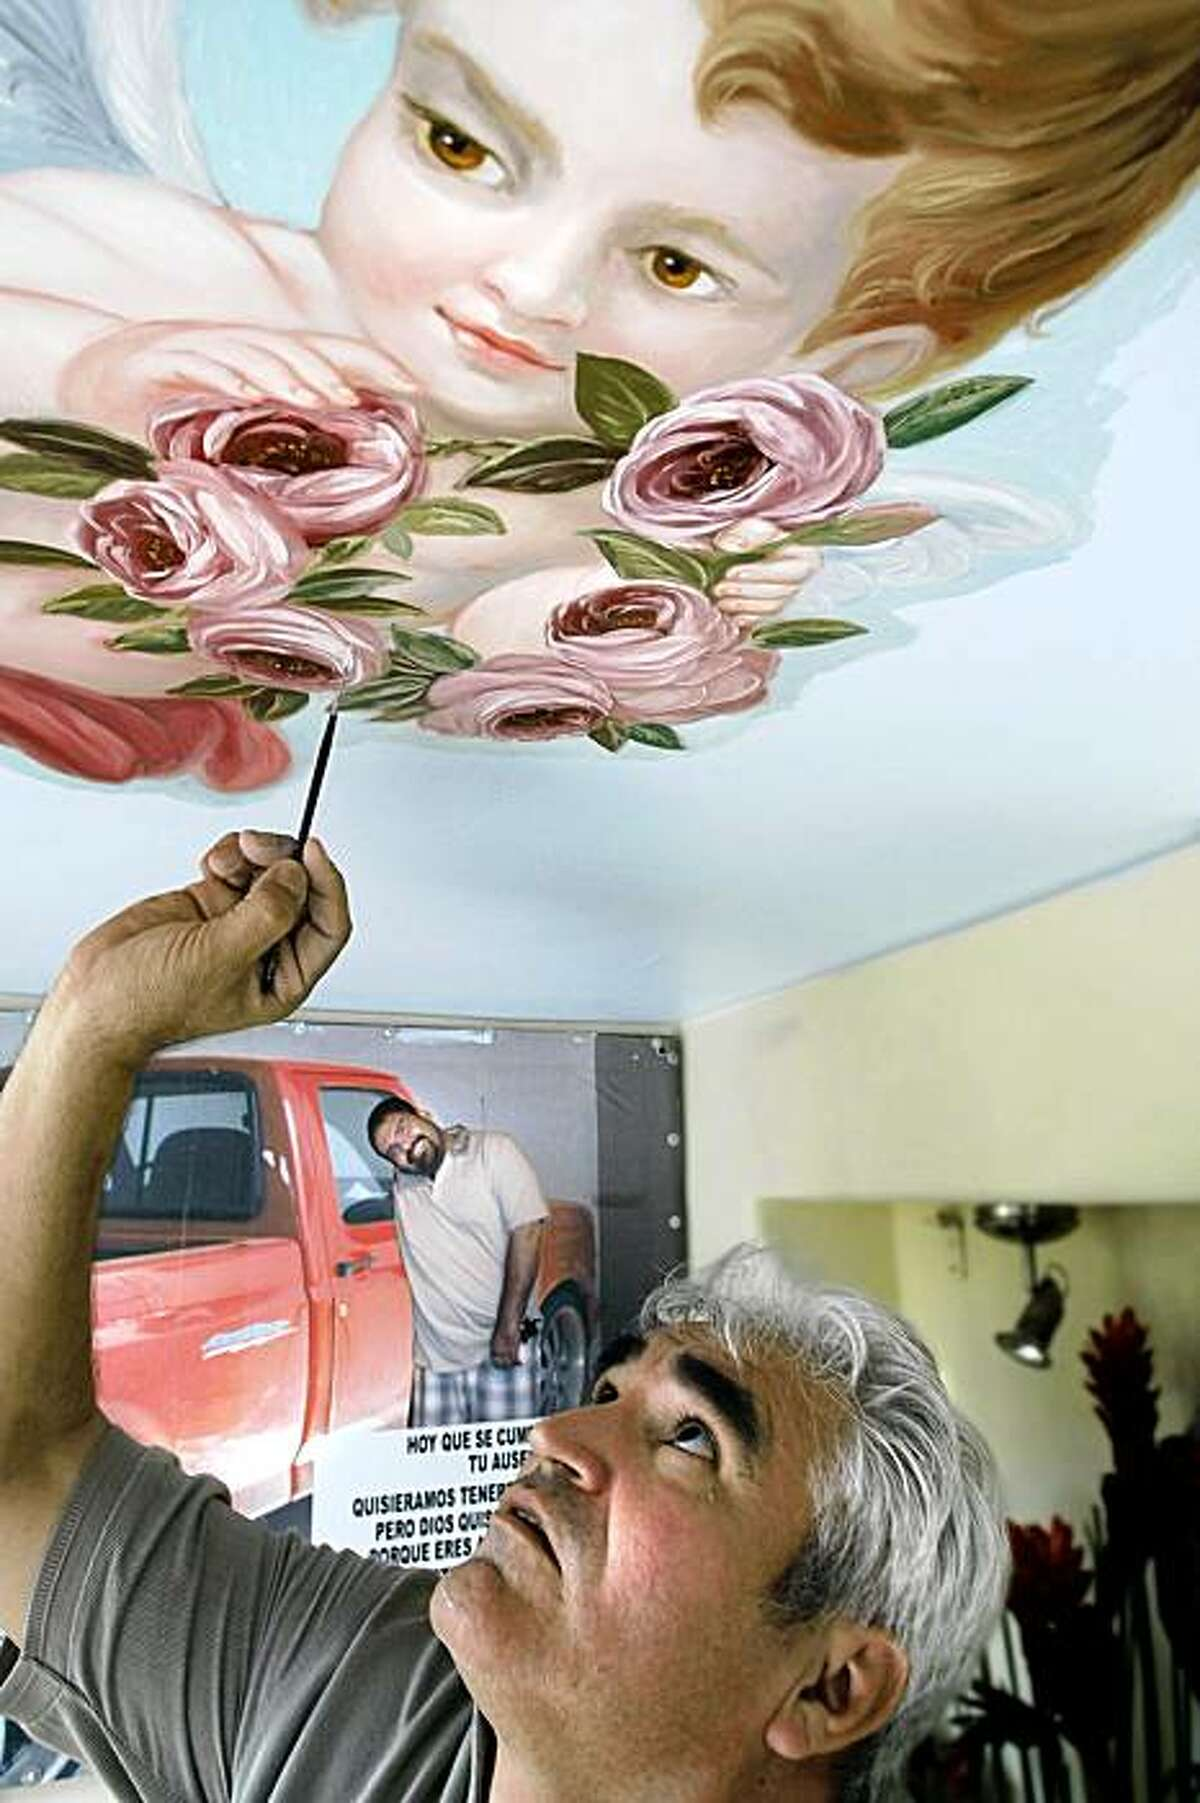 MEXICO PAINTER: Jose Espinoza is known as one of the finest artists in the Sinaloa region of Mexico. Illustrates MEXICO-PAINTER (category i) by Tracy Wilkinson (c) 2009, Los Angeles Times. Moved Saturday, Oct. 24, 2009. (MUST CREDIT: Los Angeles Times photo by Don Bartletti.) Jose Espinoza is known as one of the finest artists in the Sinaloa region of Mexico. Illustrates MEXICO-PAINTER (category i) by Tracy Wilkinson (c) 2009, Los Angeles Times. Moved Saturday, Oct. 24, 2009. (MUST CREDIT: Los Angeles Times photo by Don Bartletti.)